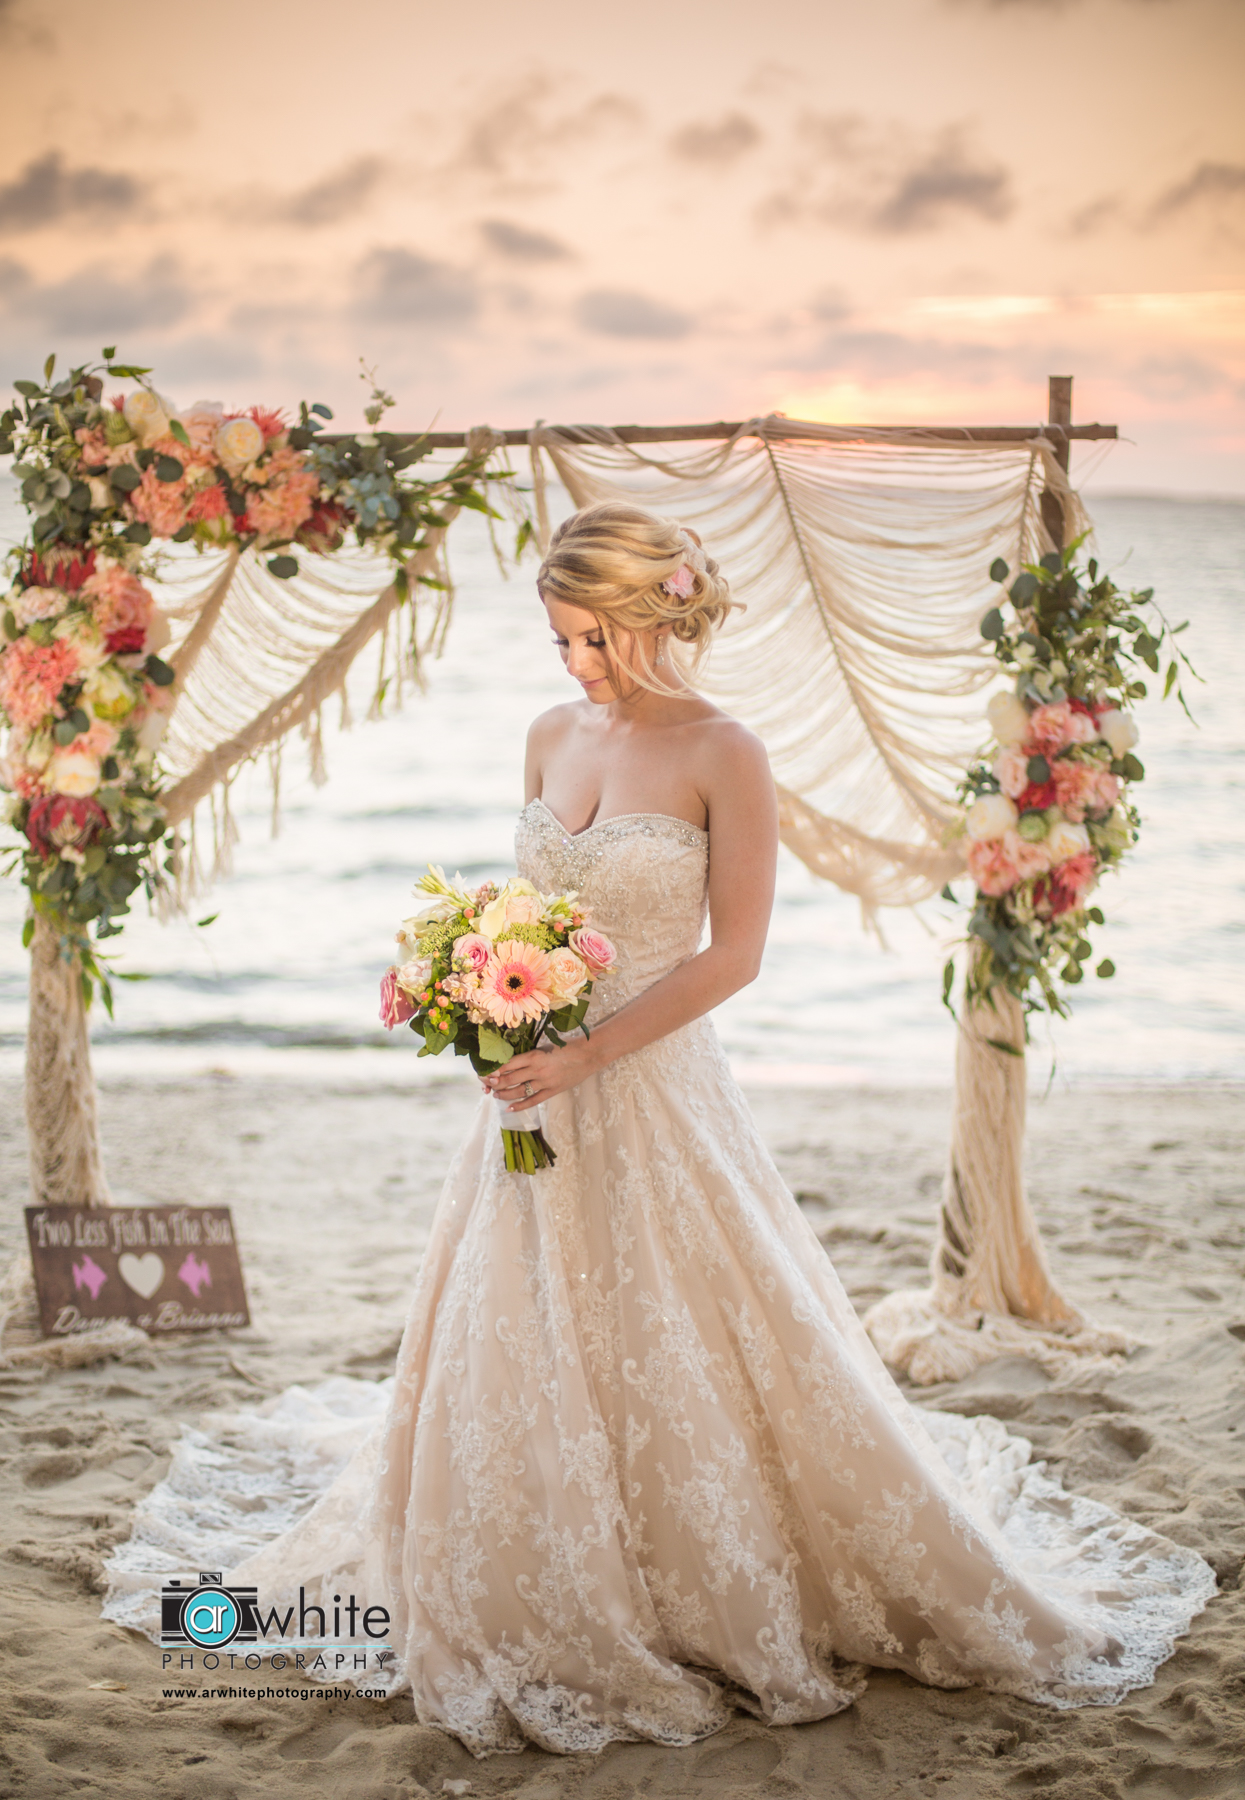 Brianna, bride holds her flower bouquet on the beach in front of the arbor after her Bohemian wedding in Oc Md.